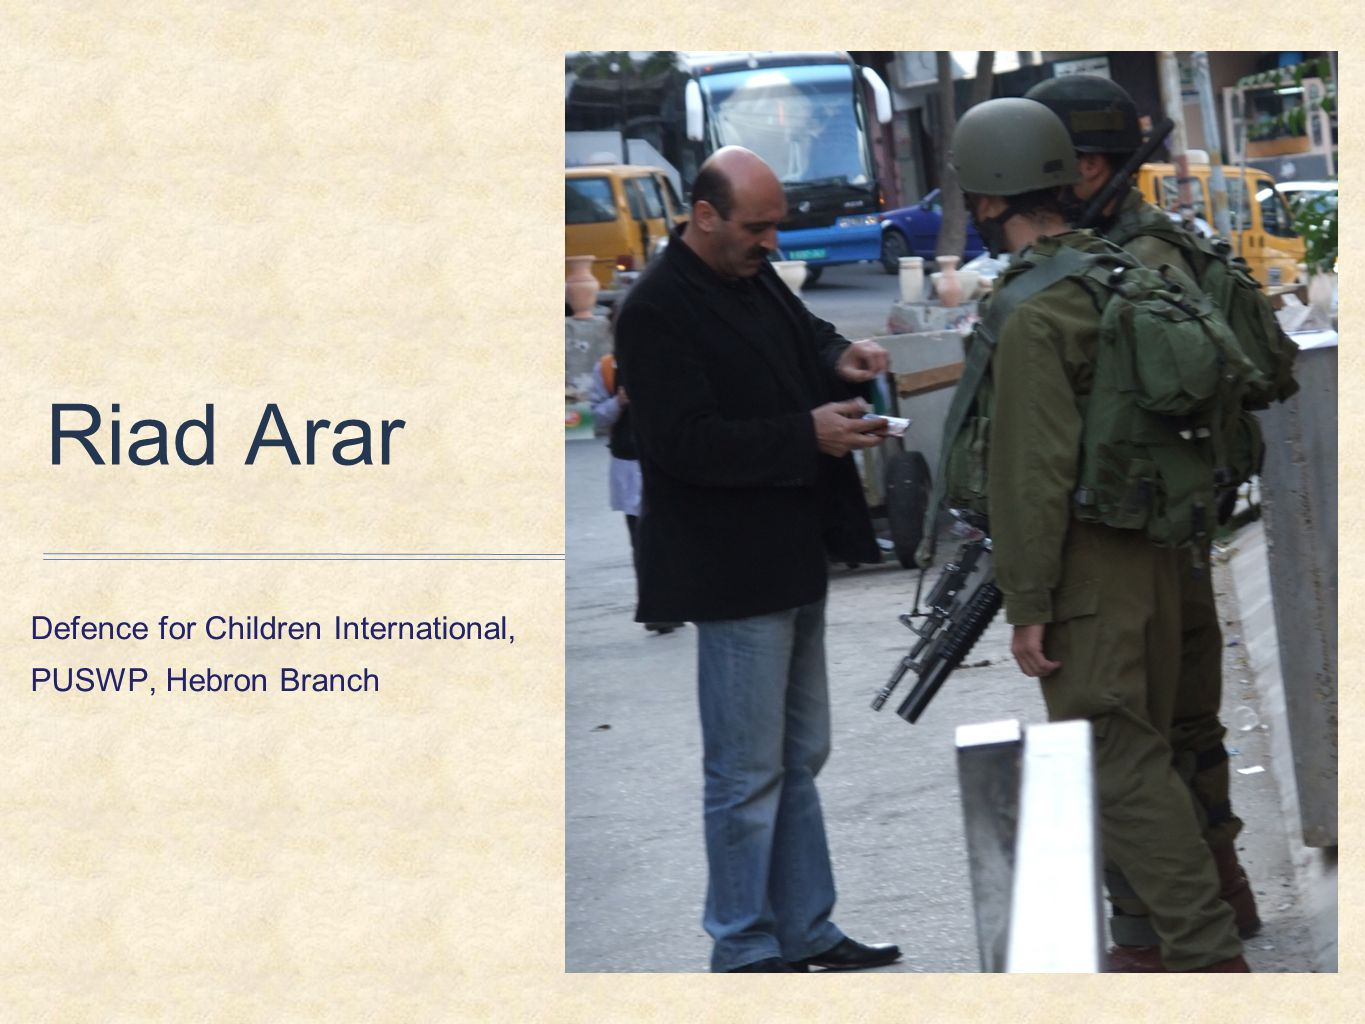 Riad Arar Defence for Children International, PUSWP, Hebron Branch